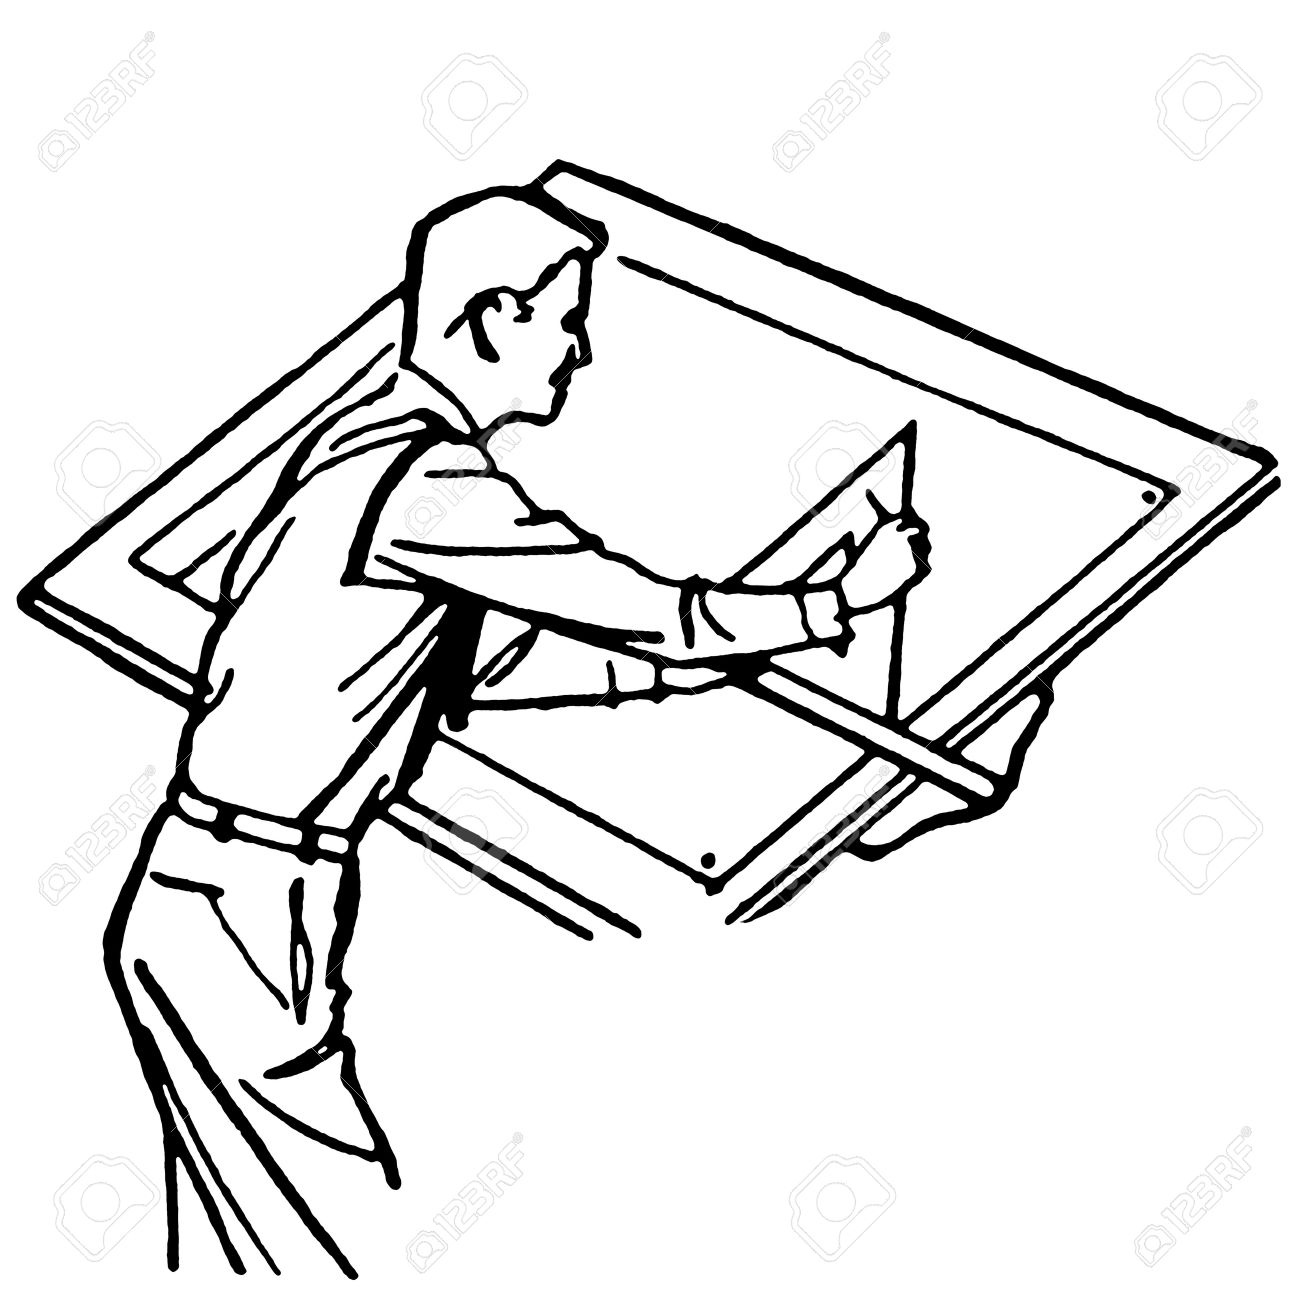 Architect clipart black and white 2 » Clipart Station.